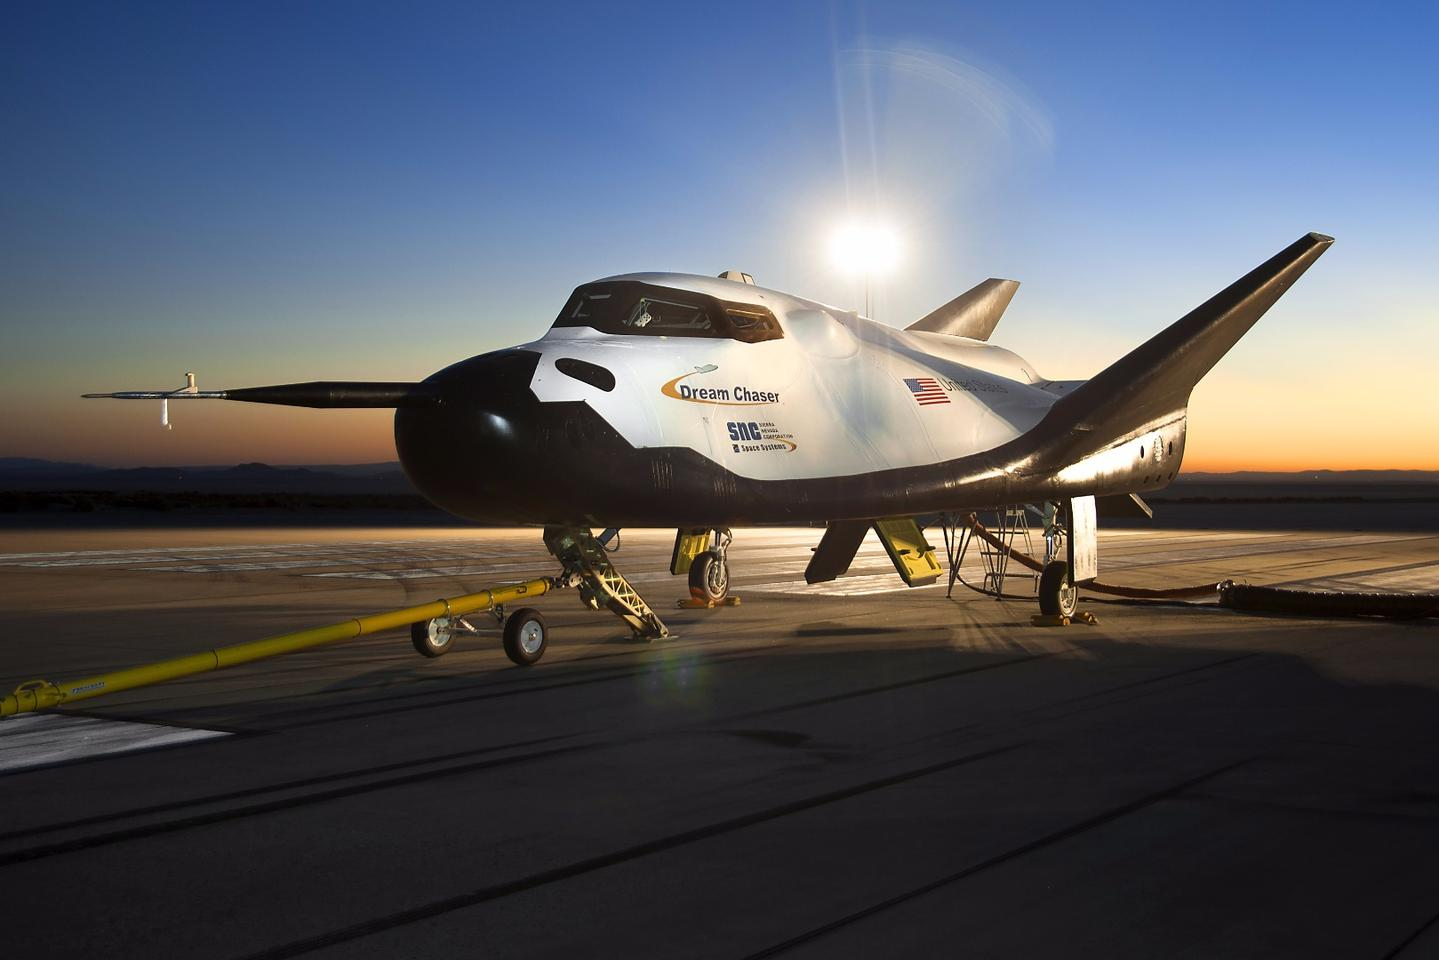 The first ever dedicated United Nations space mission will allow all UN member countries to propose and develop experiments that will orbit Earth for 14 days aboard Sierra Nevada's Dream Chaser spaceplane